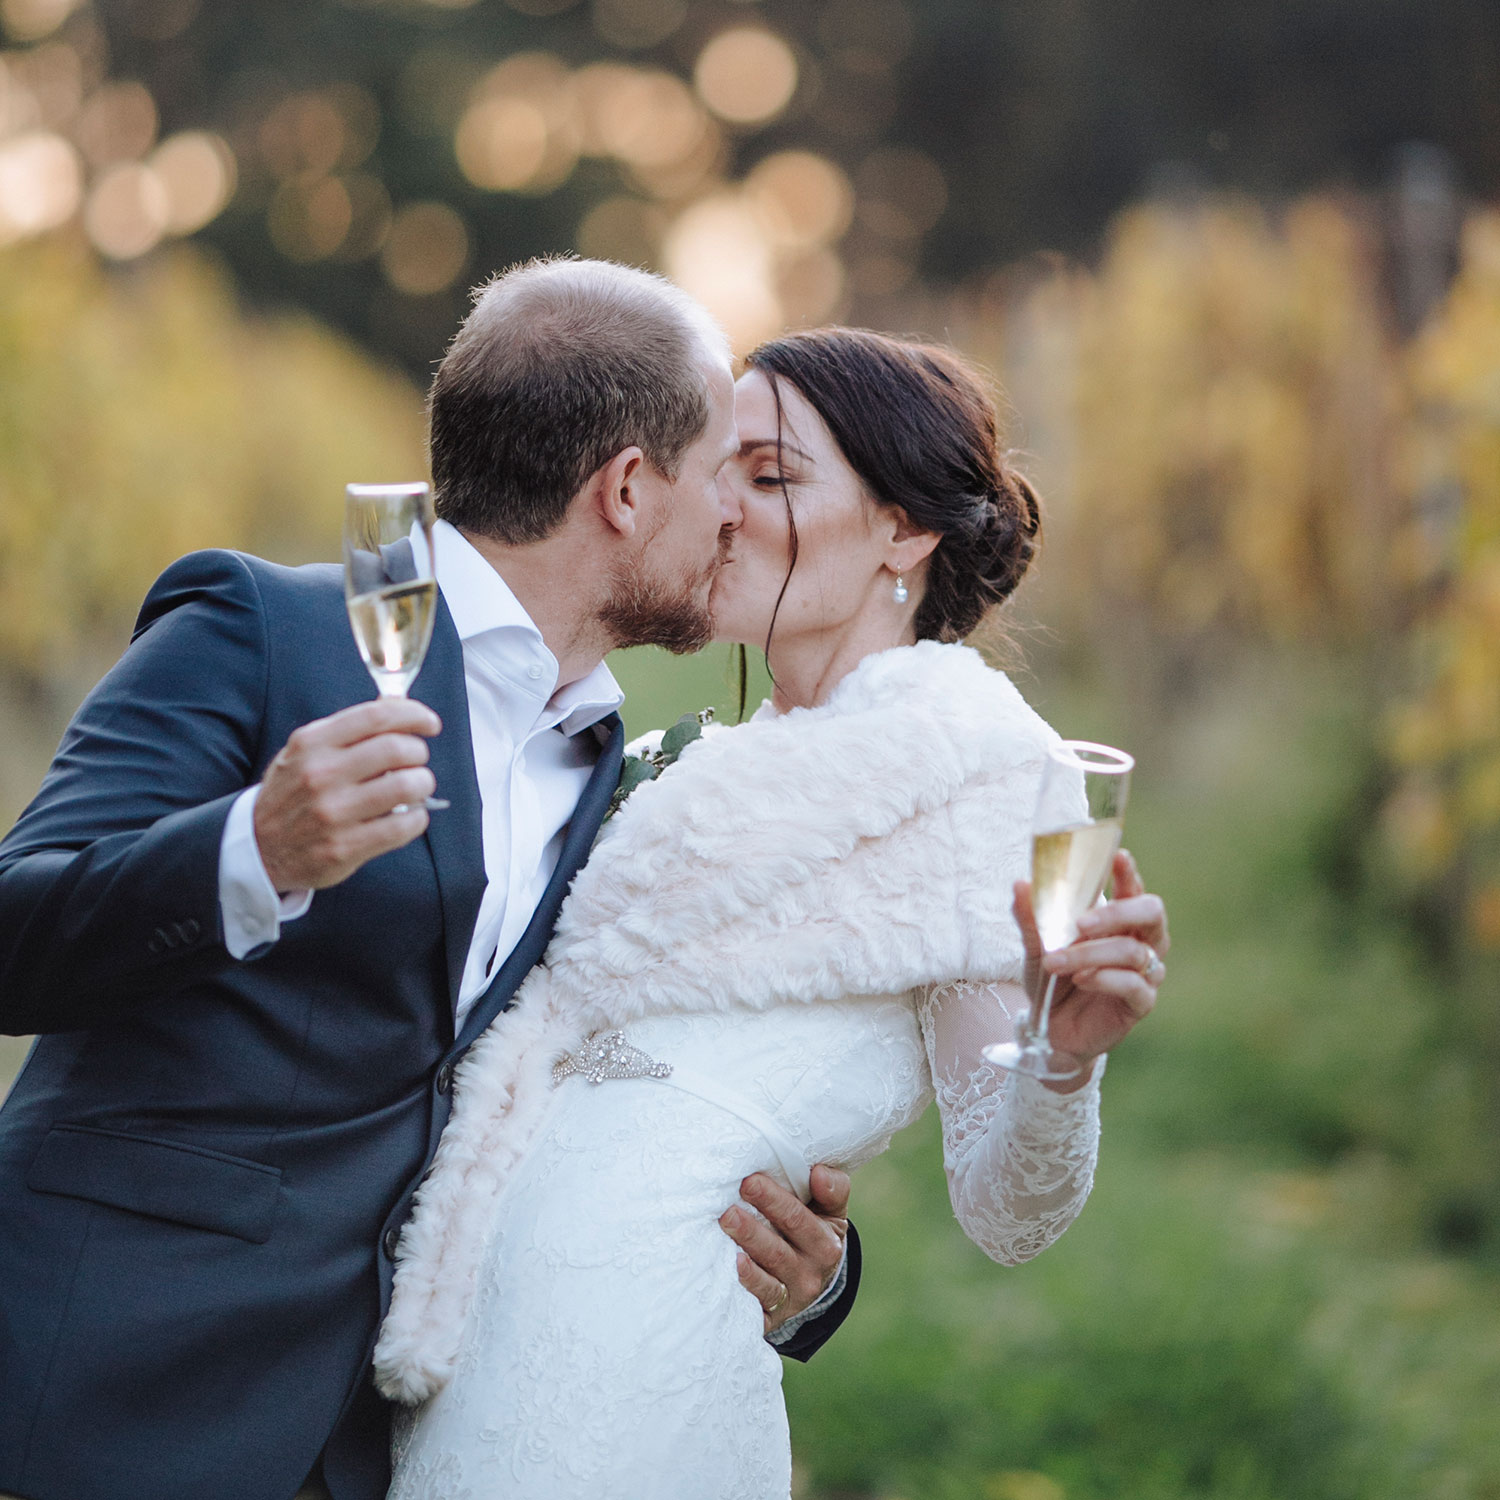 Denmark wedding photographer. Winter wedding at Paul Nelson Wines in Denmark WA